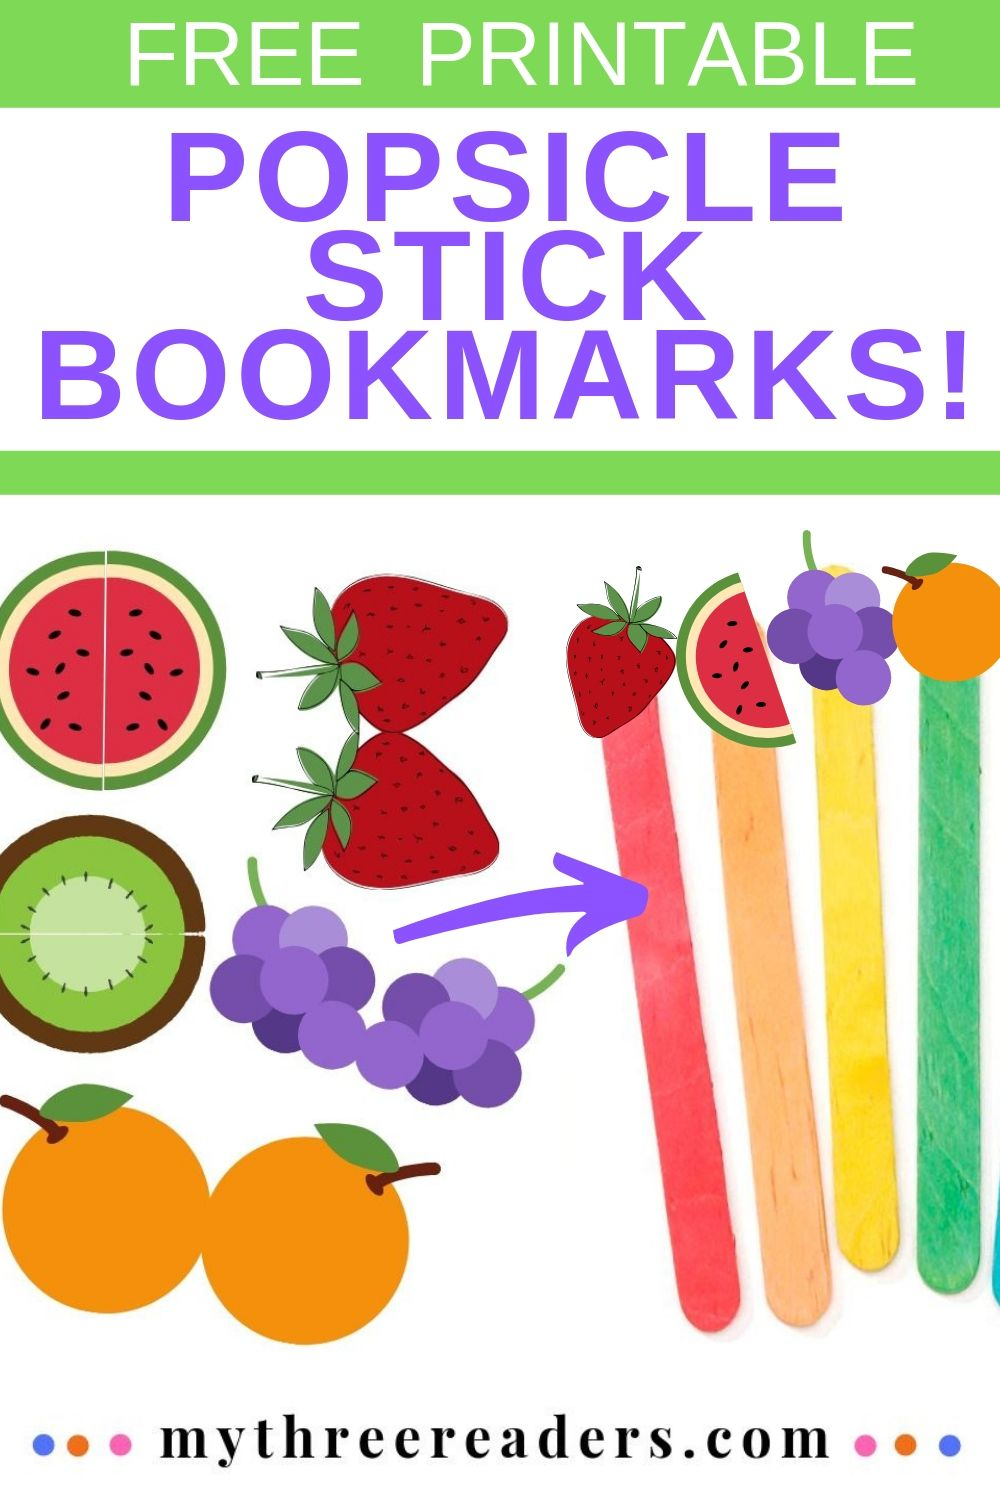 Popsicle Stick Bookmarks Pin